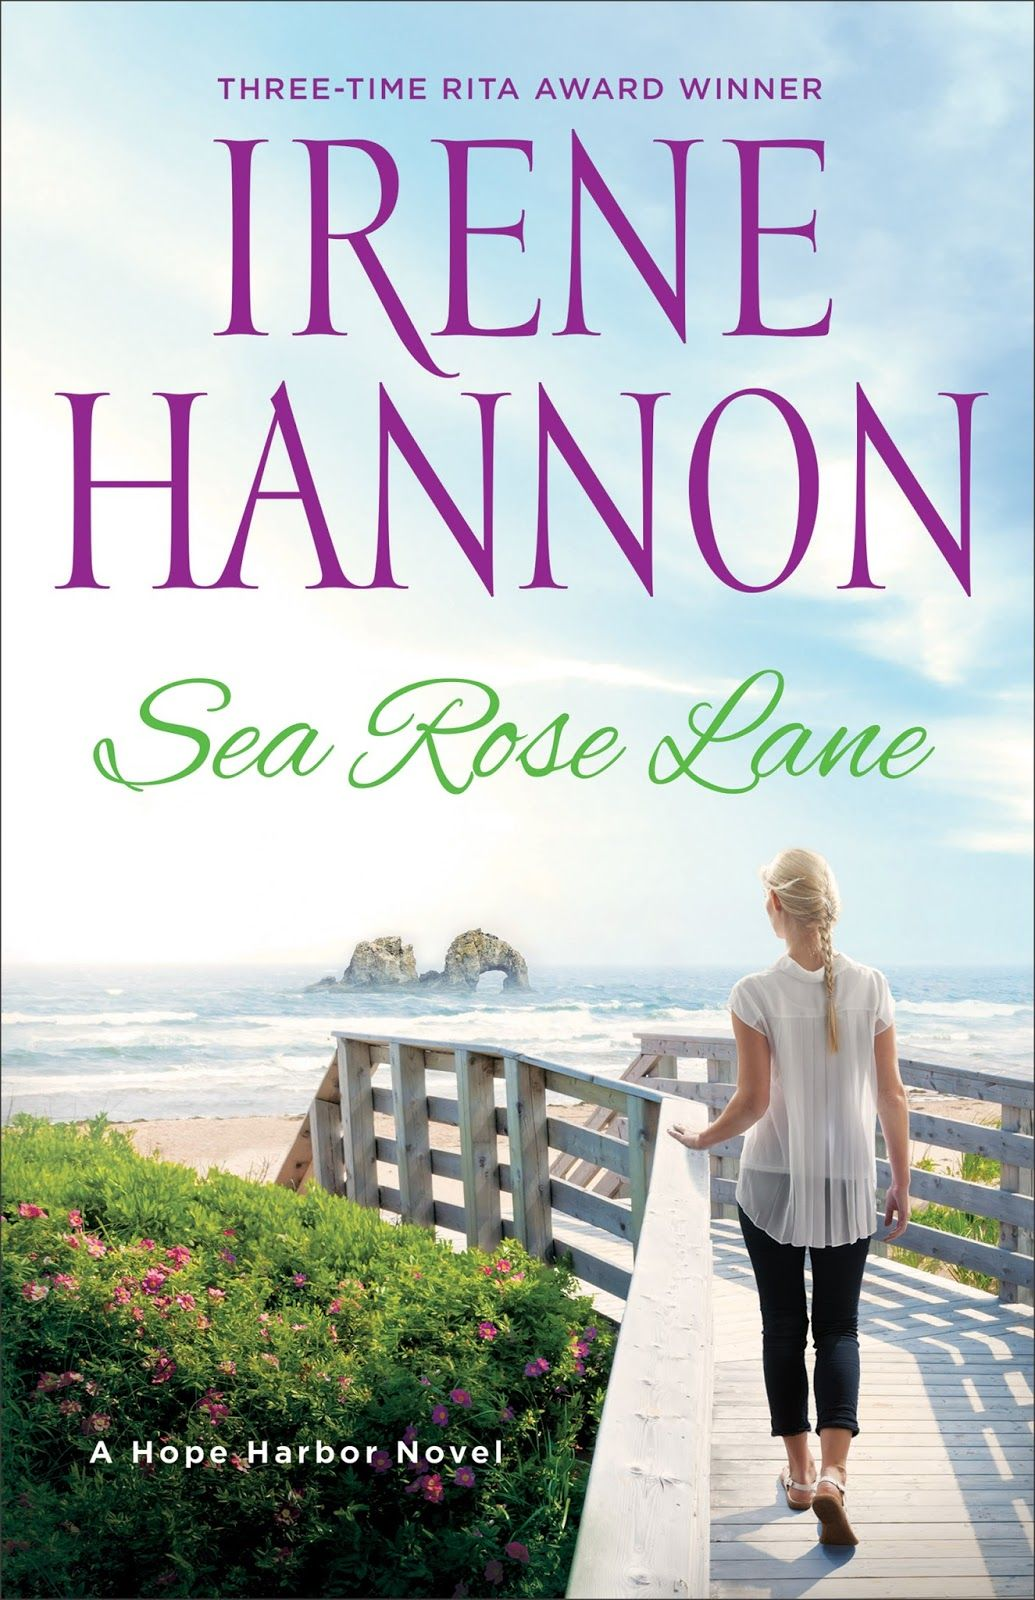 Southern Gal Loves to Read: Awesome, gentle romance -- Sea Rose Lane